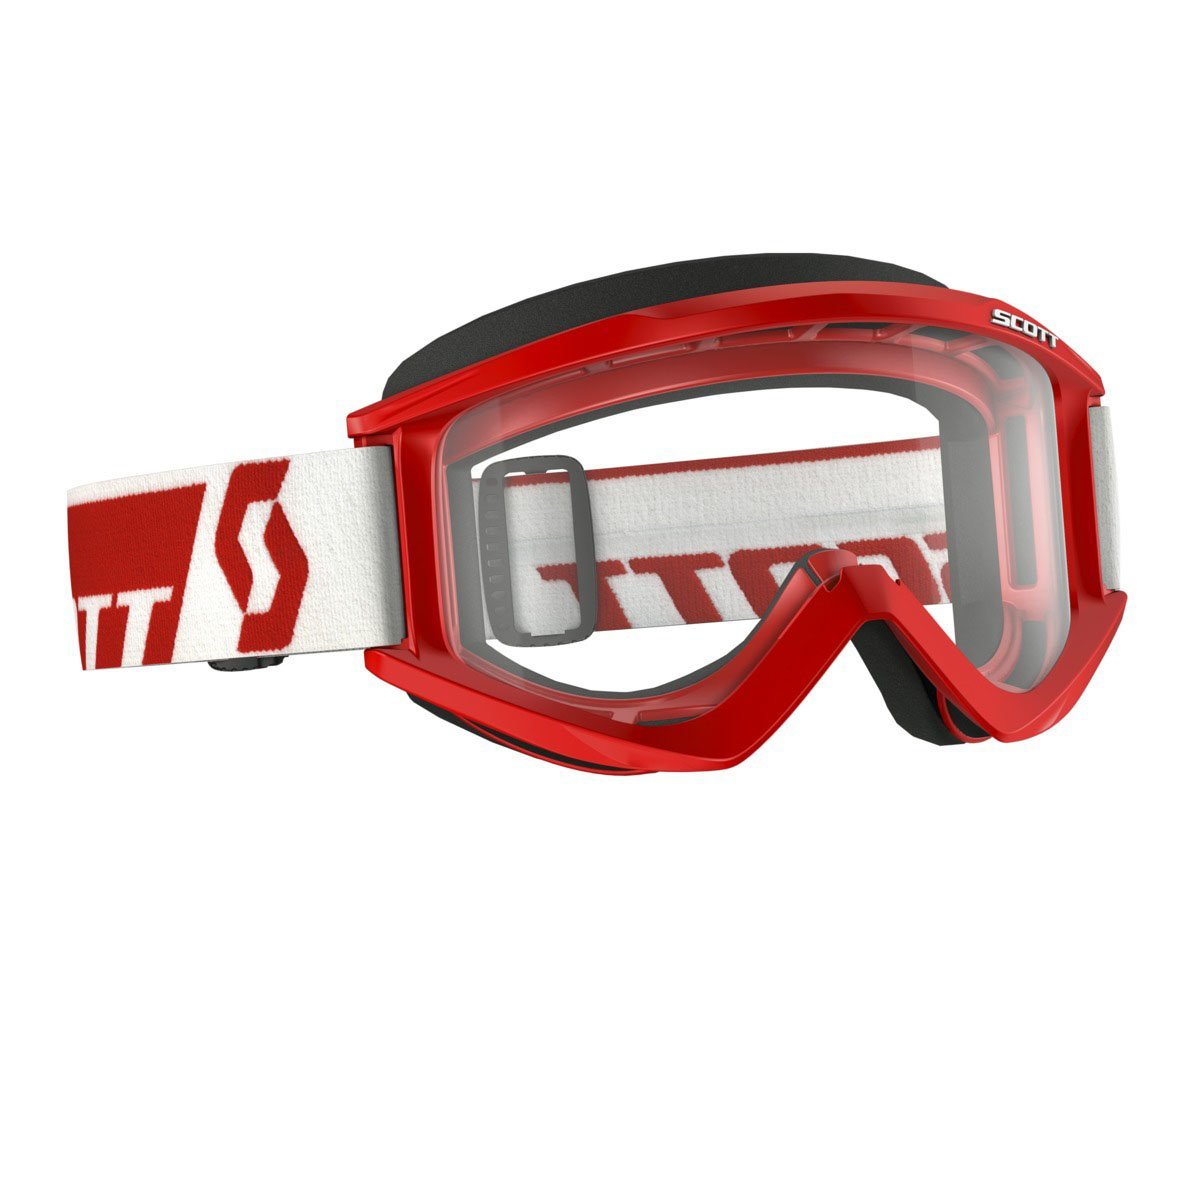 Scott Sports Recoil Xi Goggles with Standard AFC Lens (Red Frame/Clear Lens)